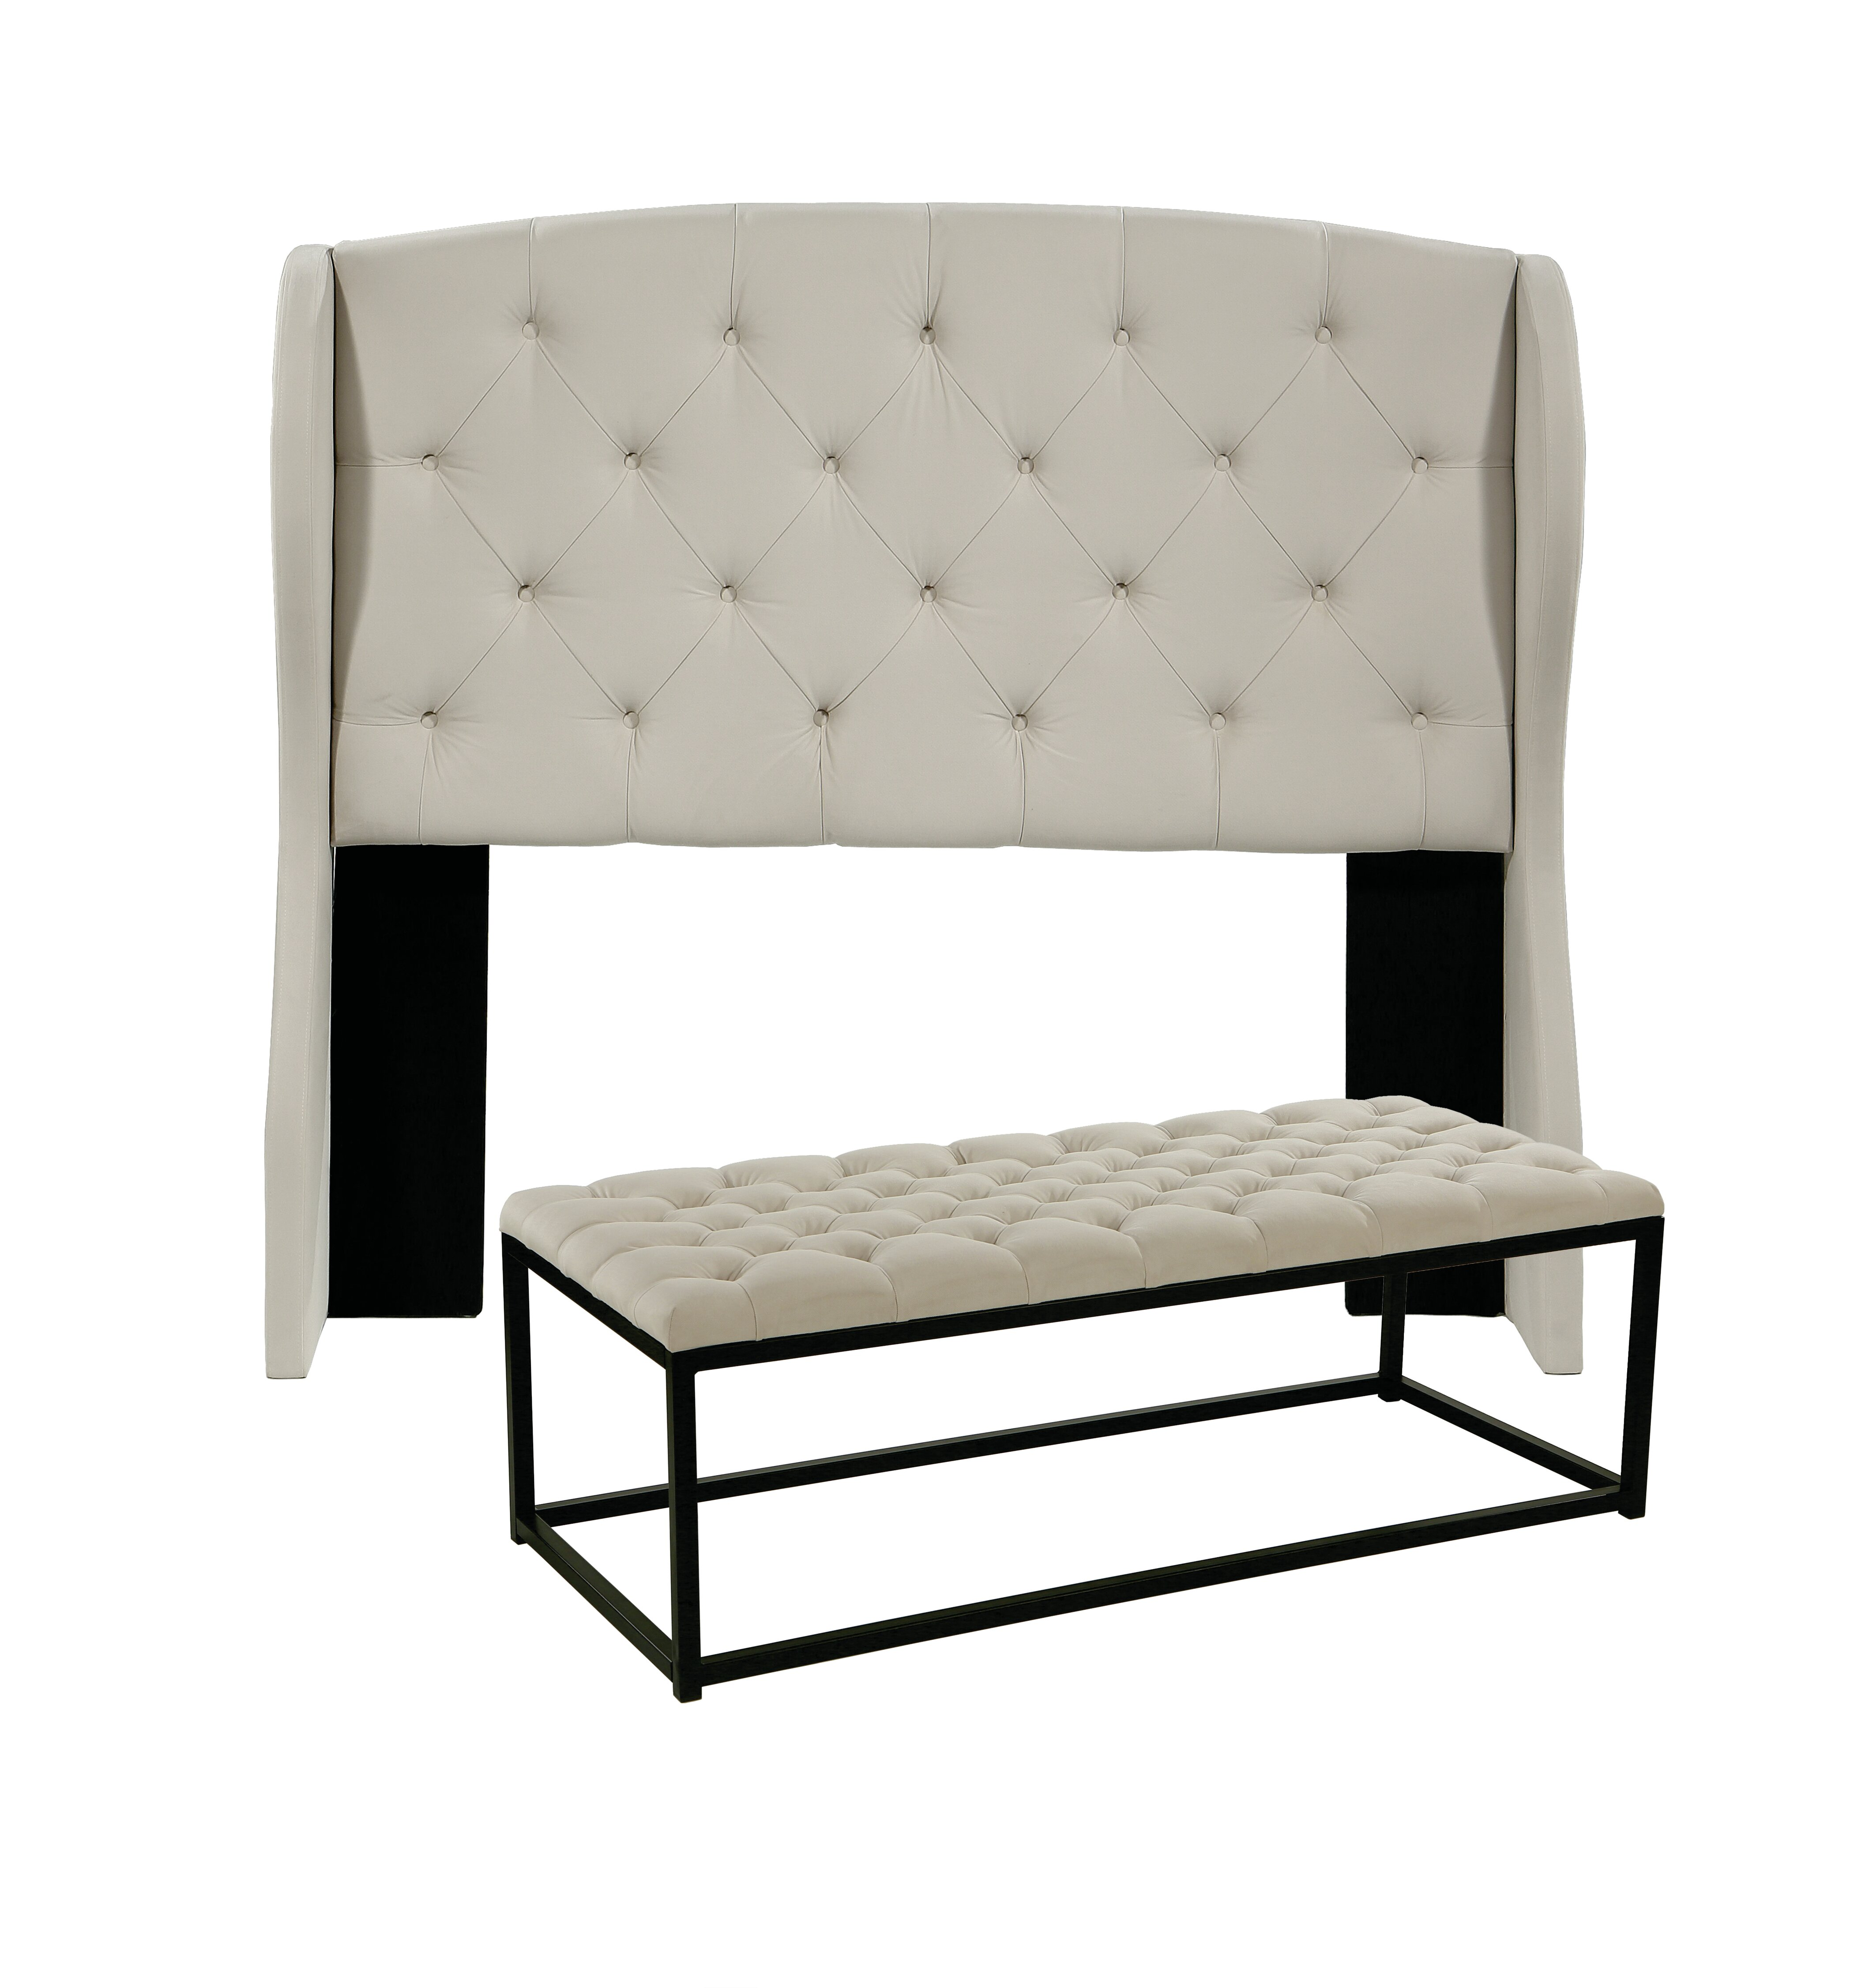 Cool Sornson Upholstered Wingback Headboard And Tufted Bench Evergreenethics Interior Chair Design Evergreenethicsorg